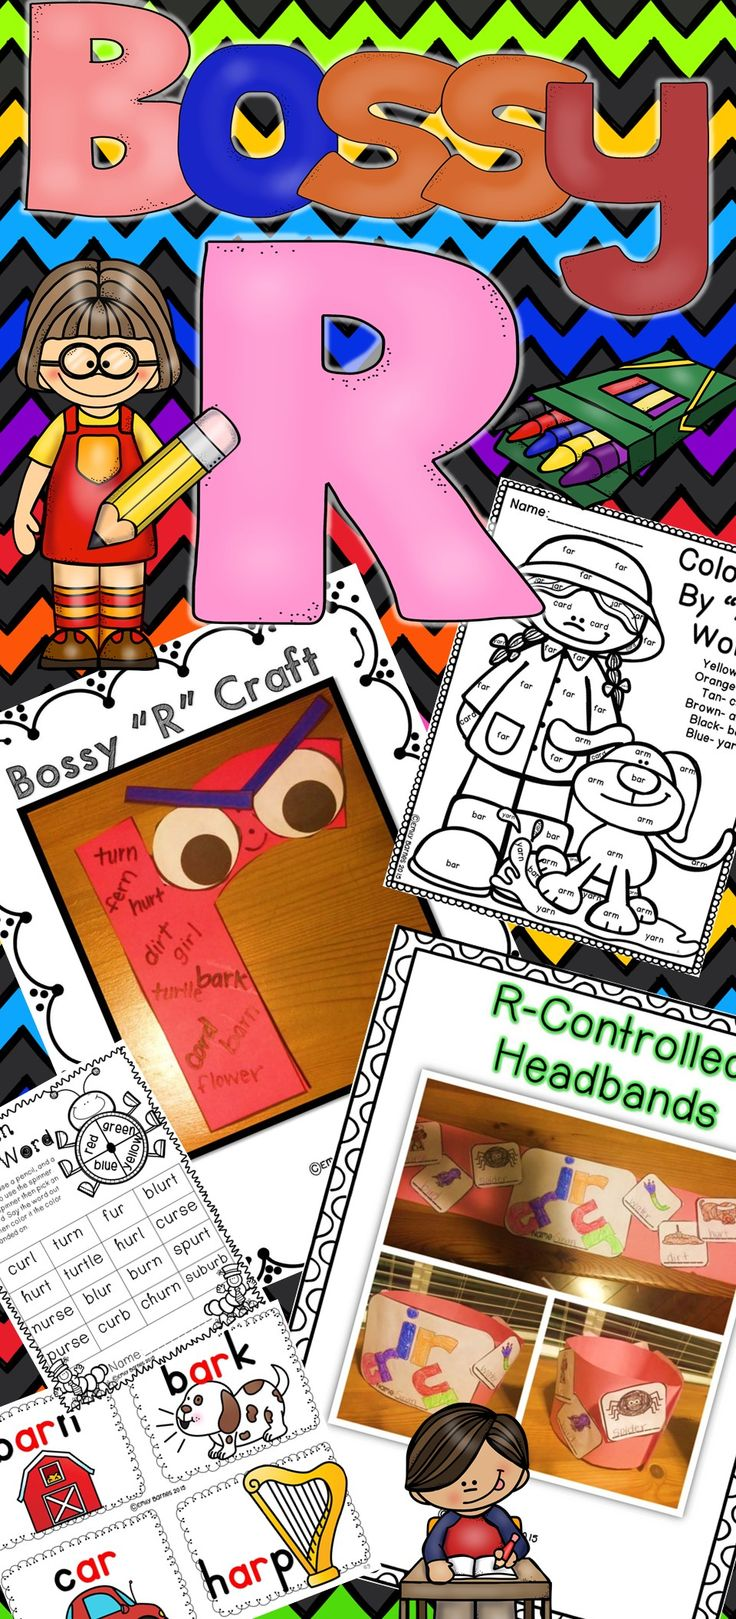 Bossy R Crazy: R controlled vowel activity pack. Crafts, PowerPoint, centers, headbands, and more!